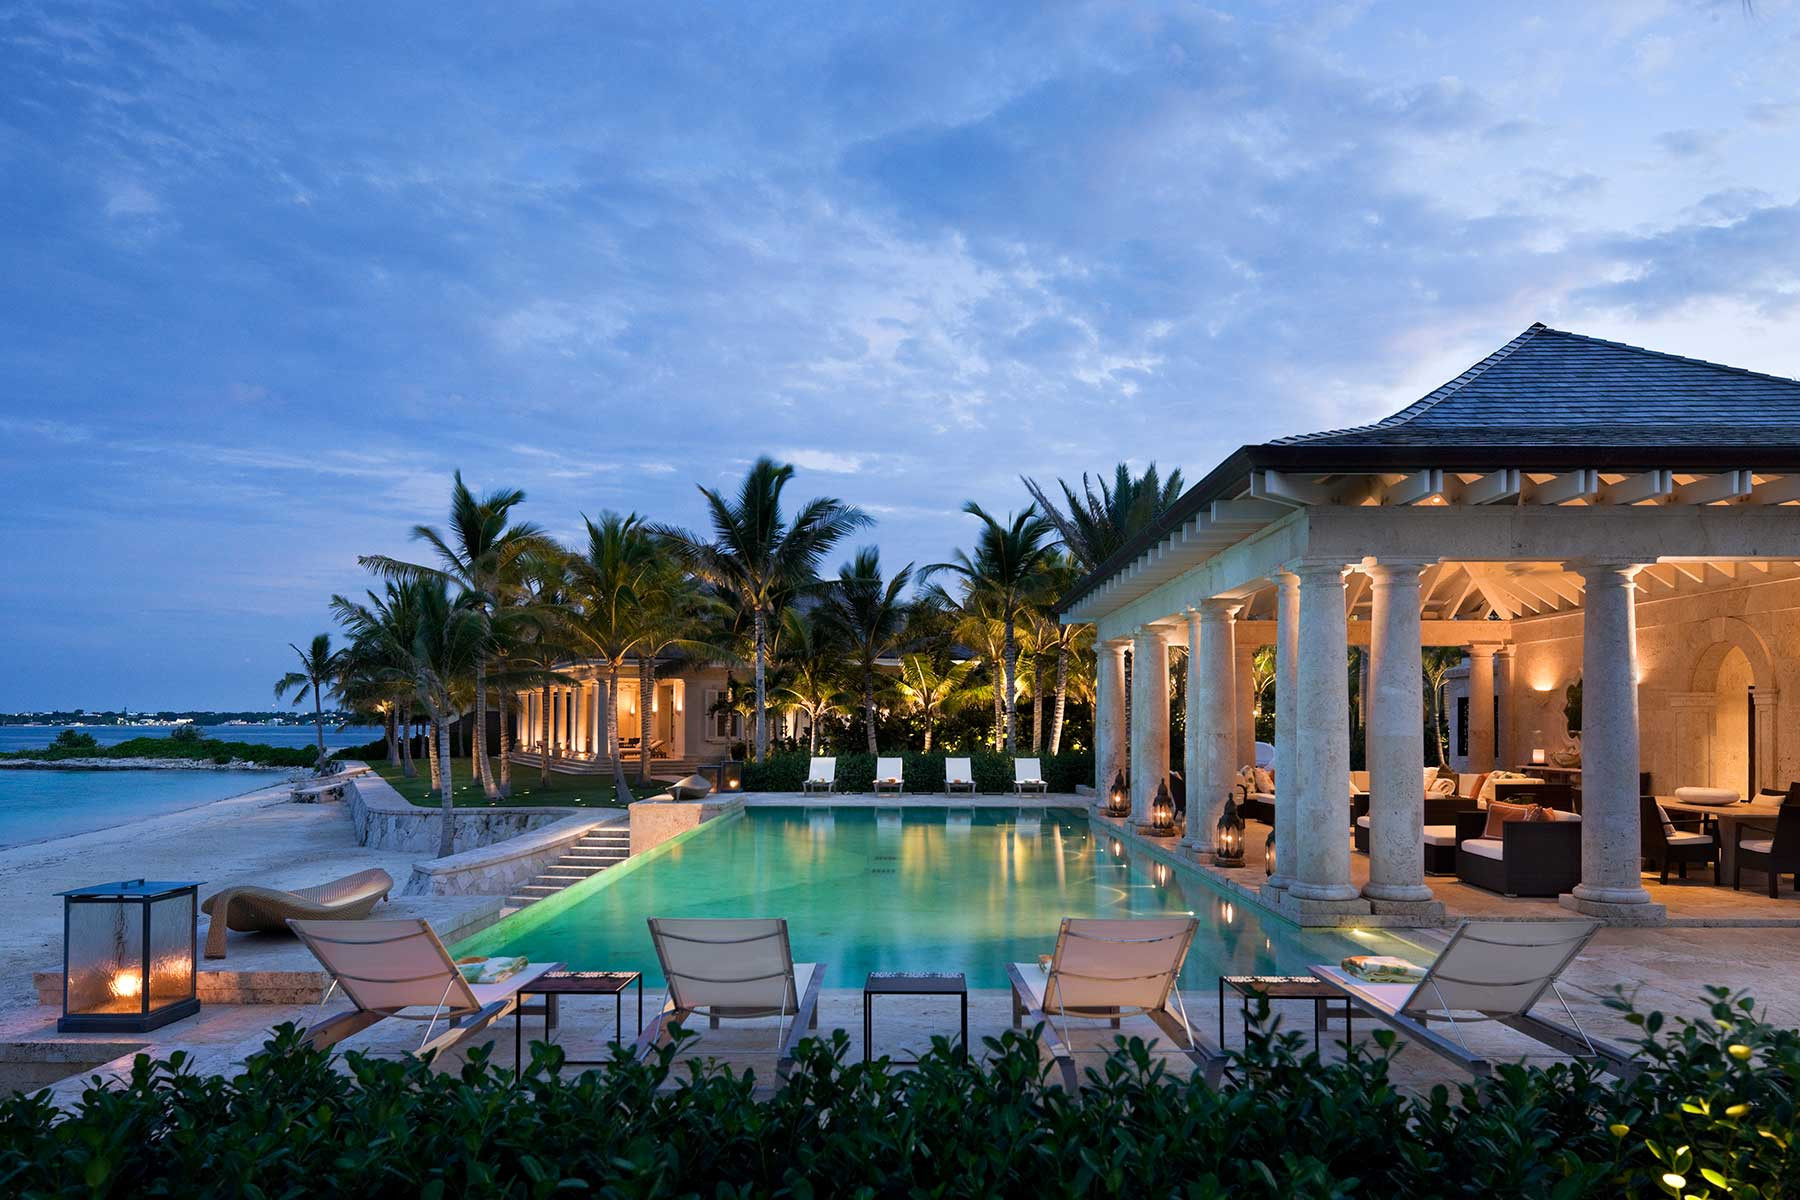 Pool house marguerite rodgers interior design for American classic guest house nye beach